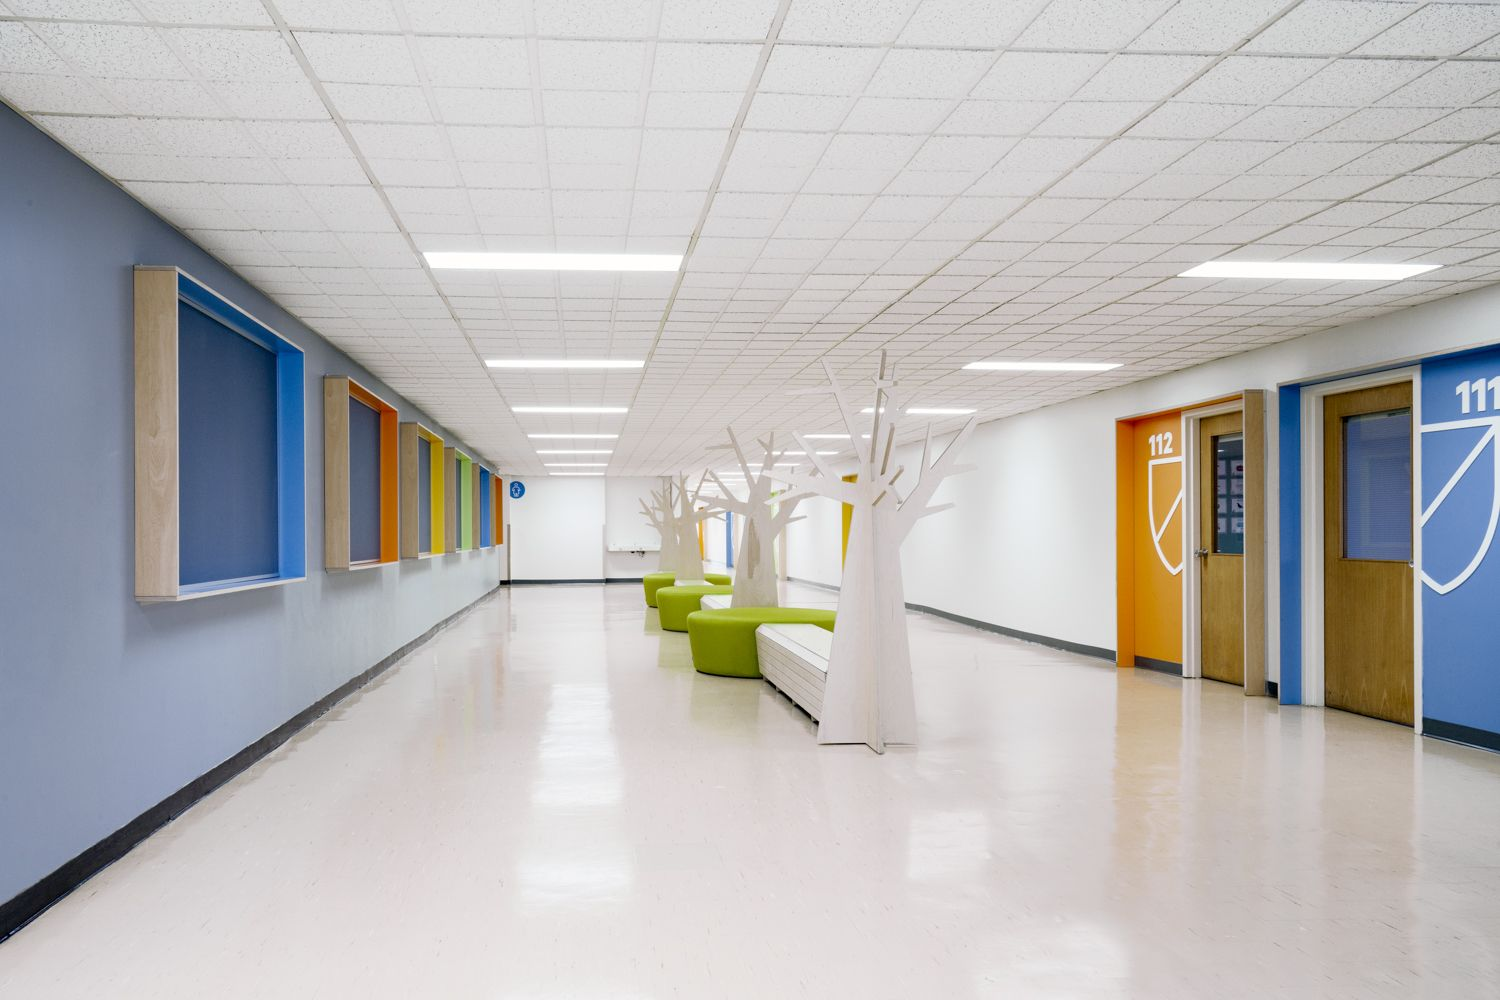 Acad mie sainte anne academy cole primaire elementary for Cours design interieur montreal